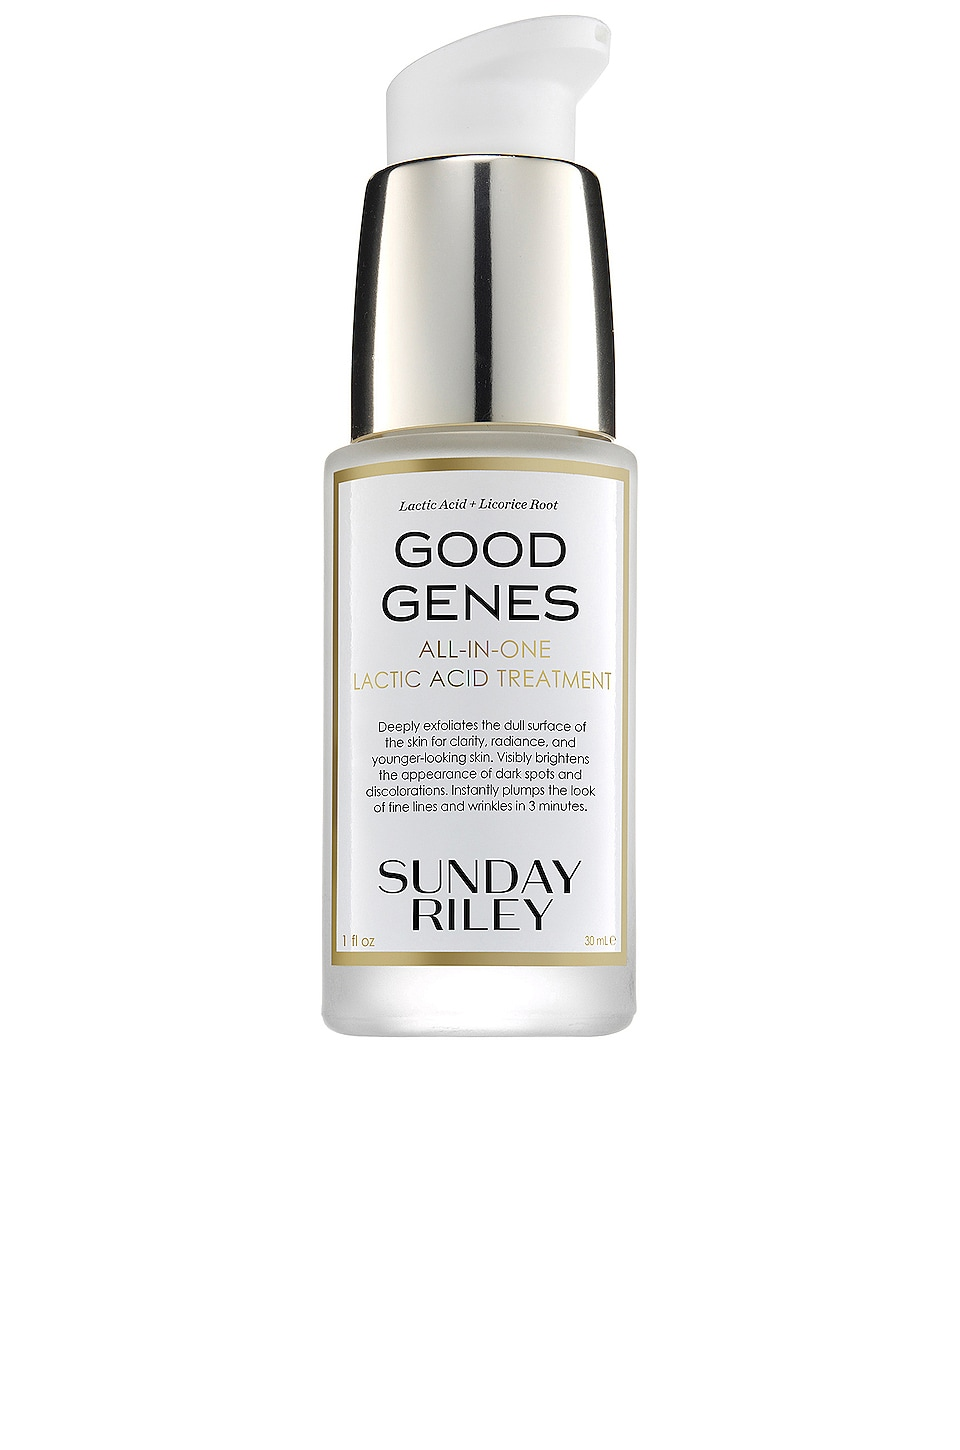 Sunday Riley TRATAMIENTO PARA EL CUIDADO DE LA PIEL TRAVEL GOOD GENES LACTIC ACID TREATMENT